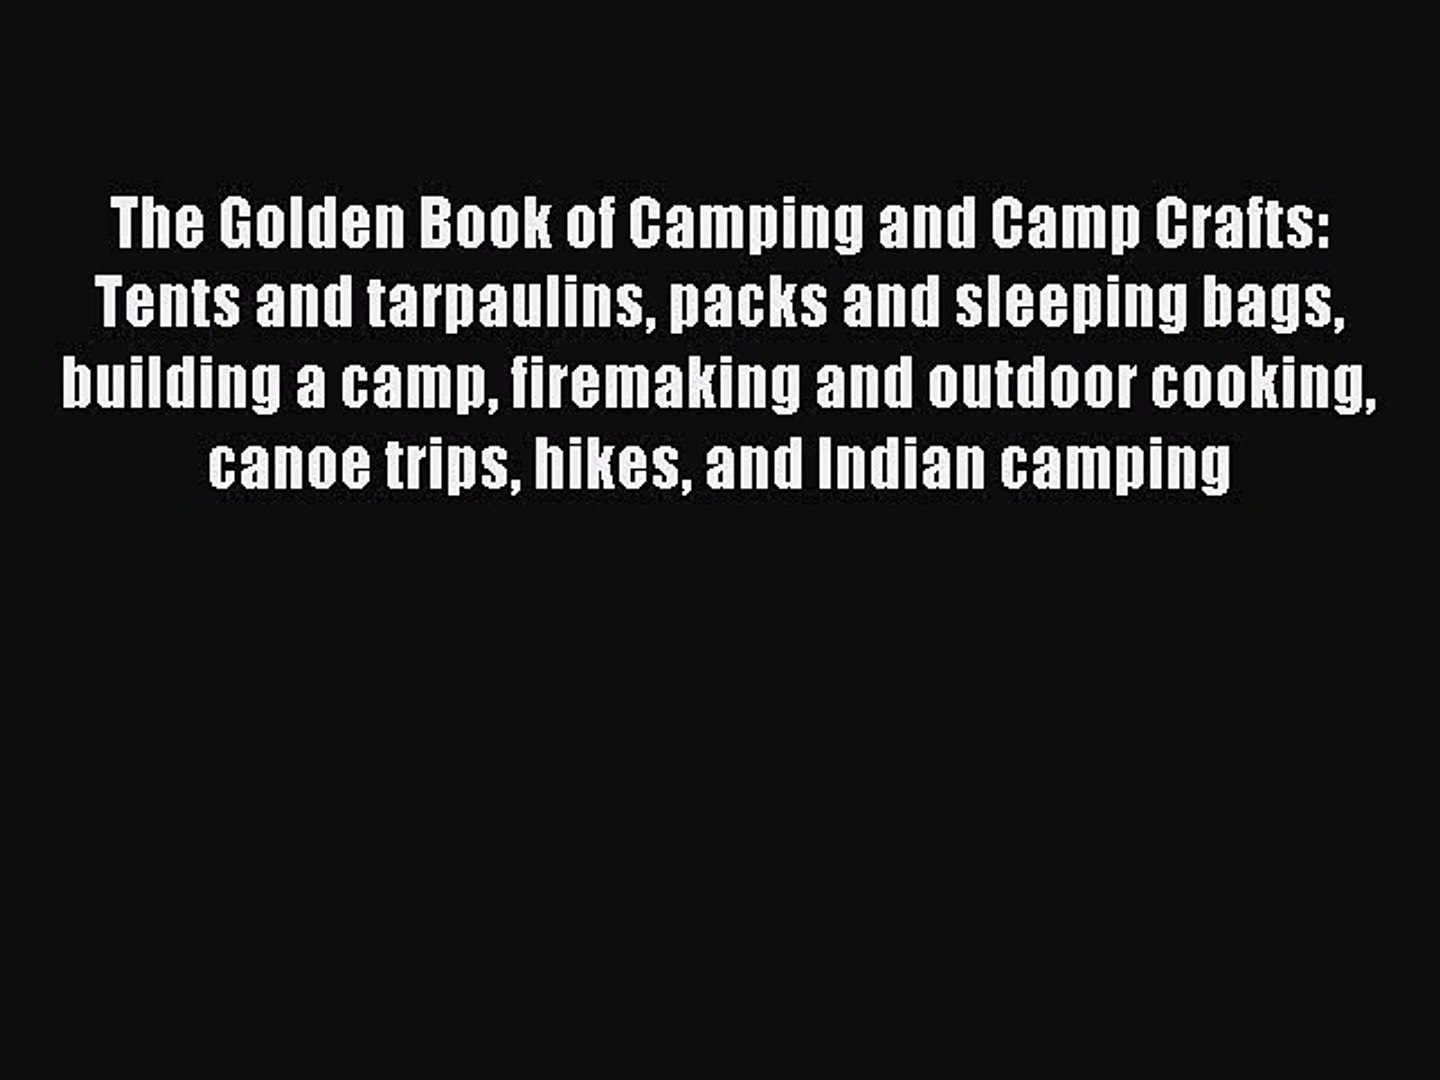 Read The Golden Book of Camping and Camp Crafts: Tents and tarpaulins packs and sleeping bags